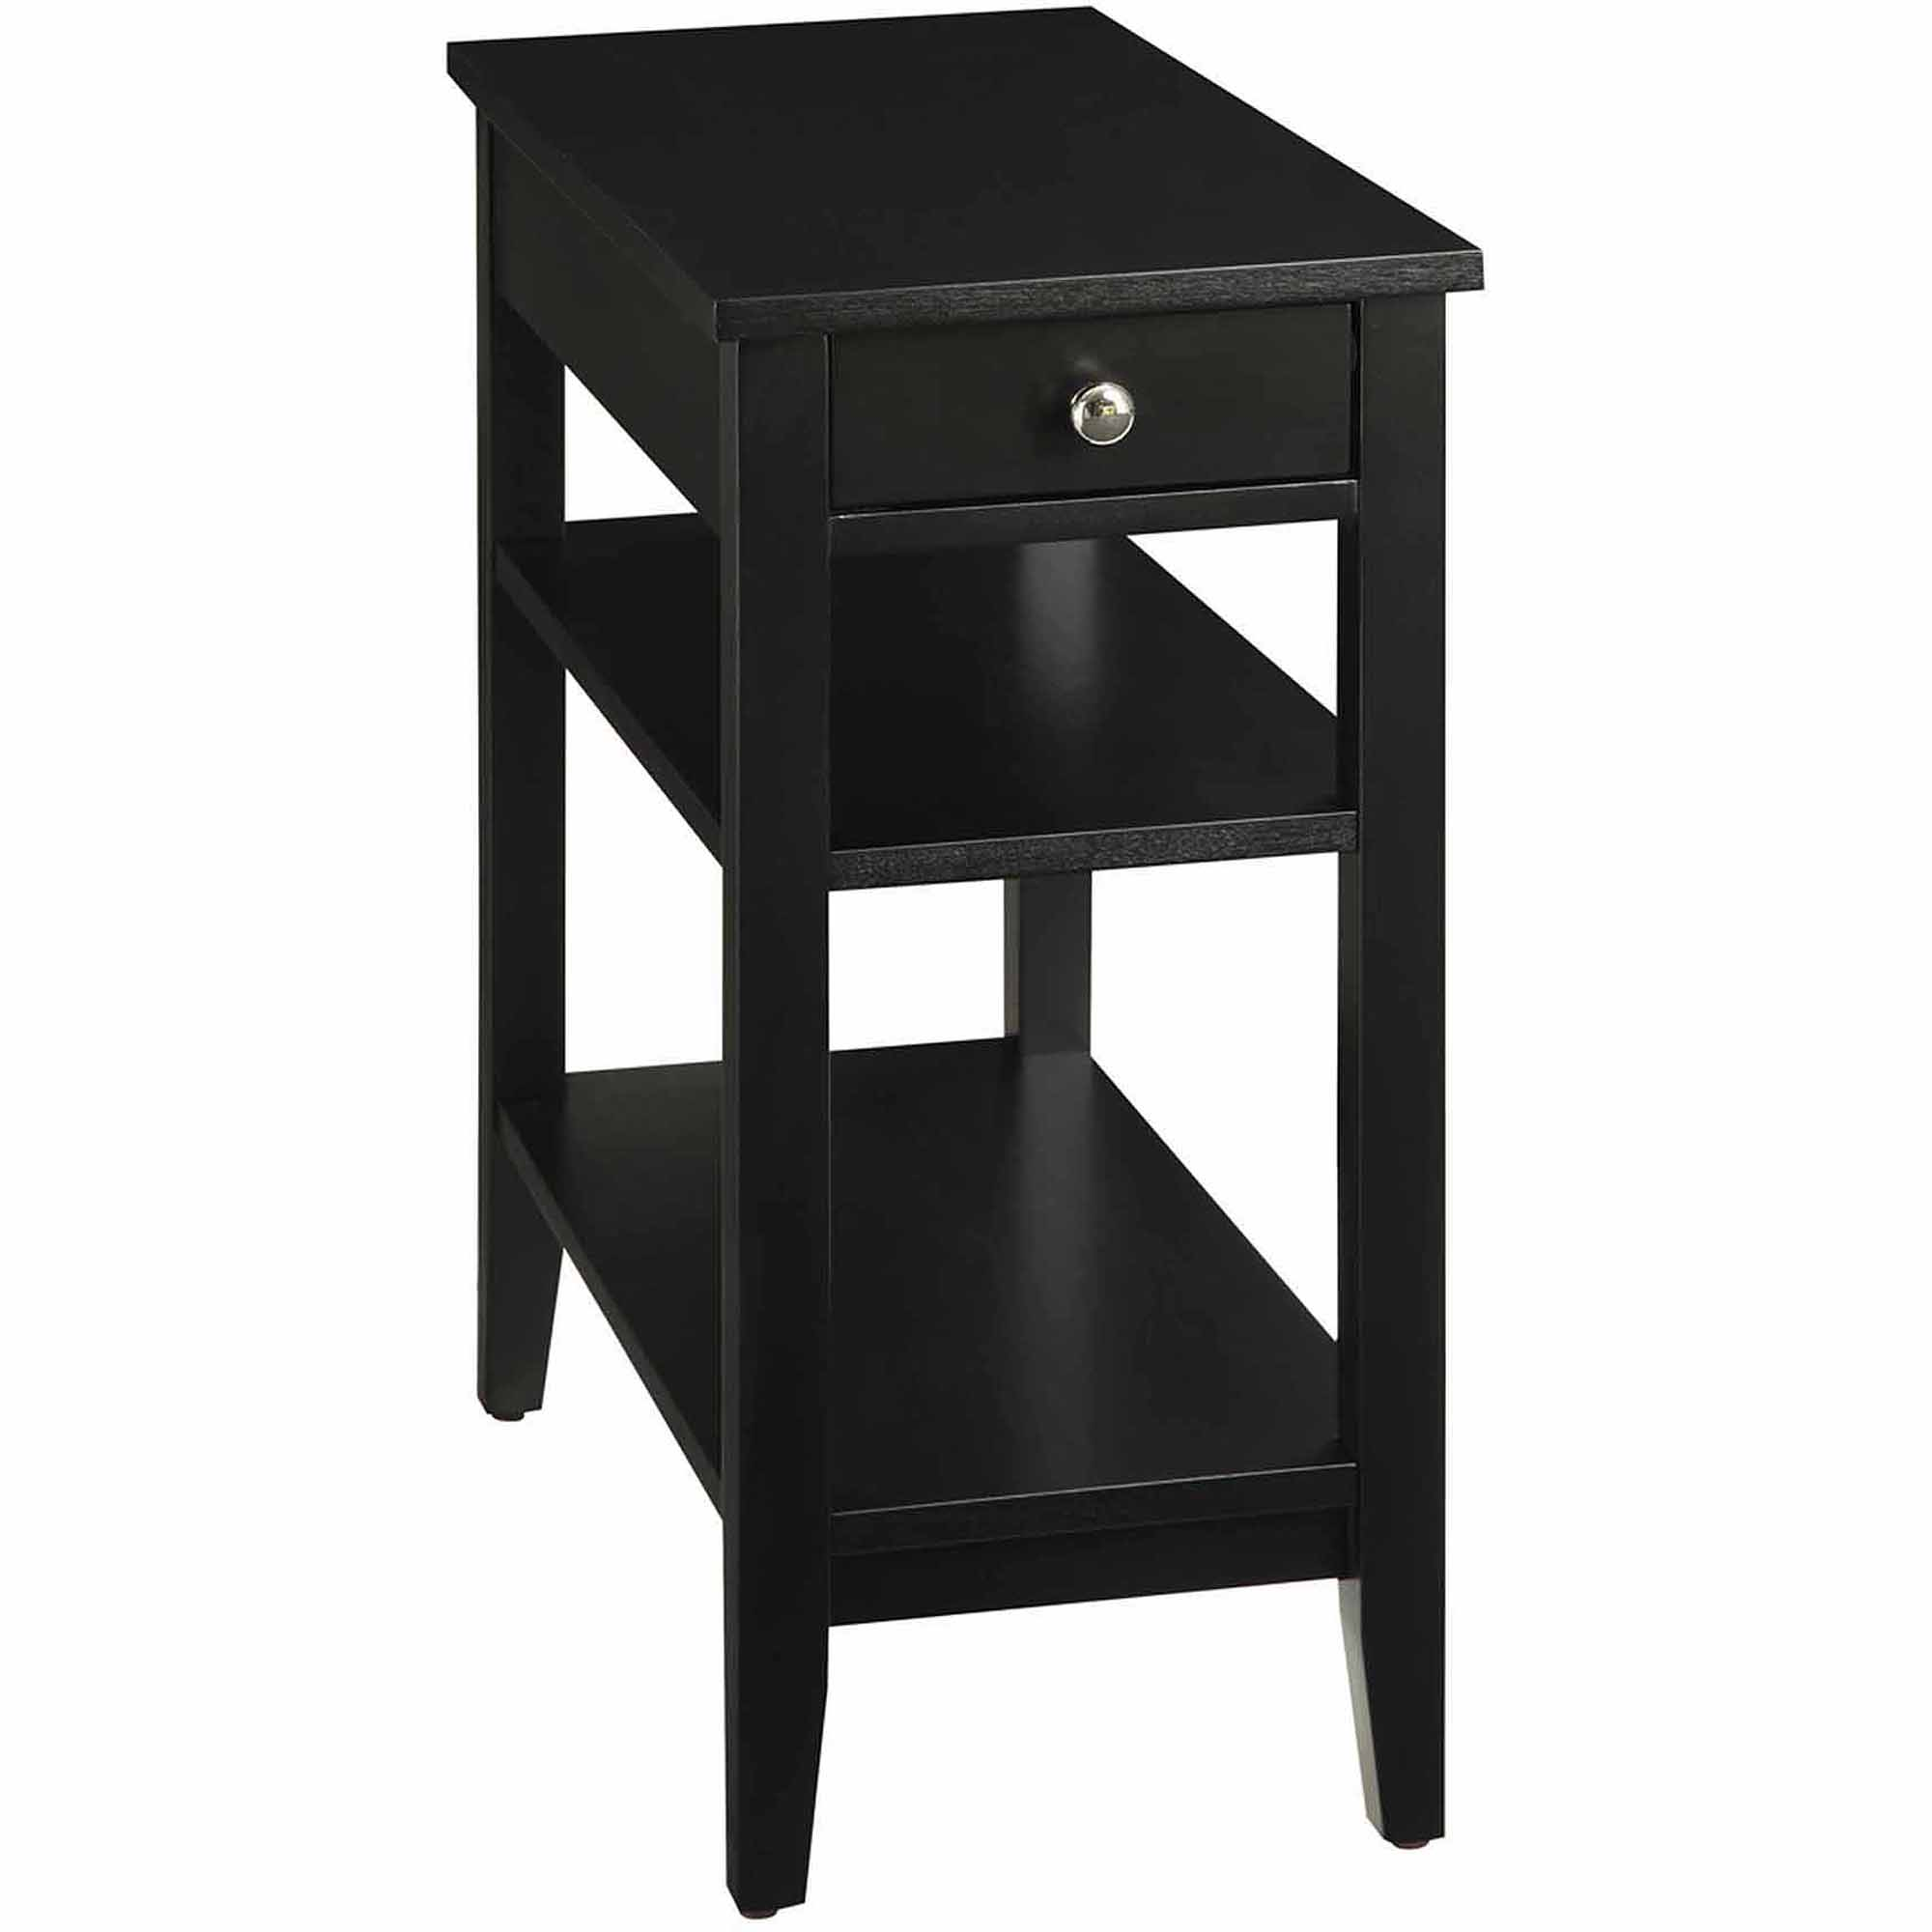 small end tables with drawers ideas interior segomego accent table tall storage best elegant black pertaining designs target wall mirrors west elm scoop lamp mission retro bedroom